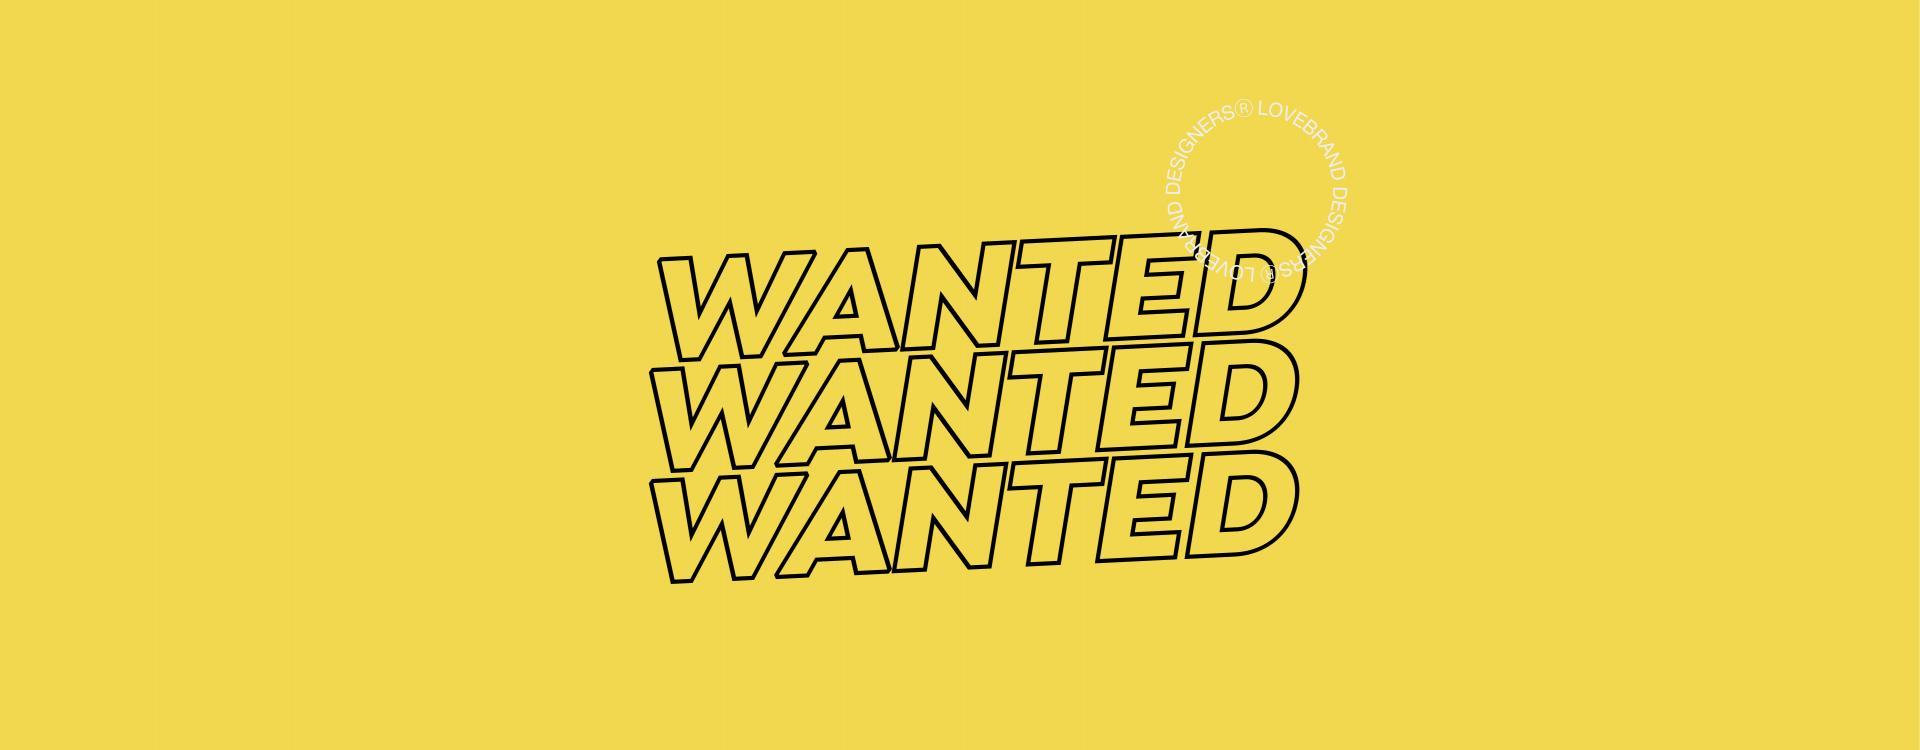 Wanted-header@3x